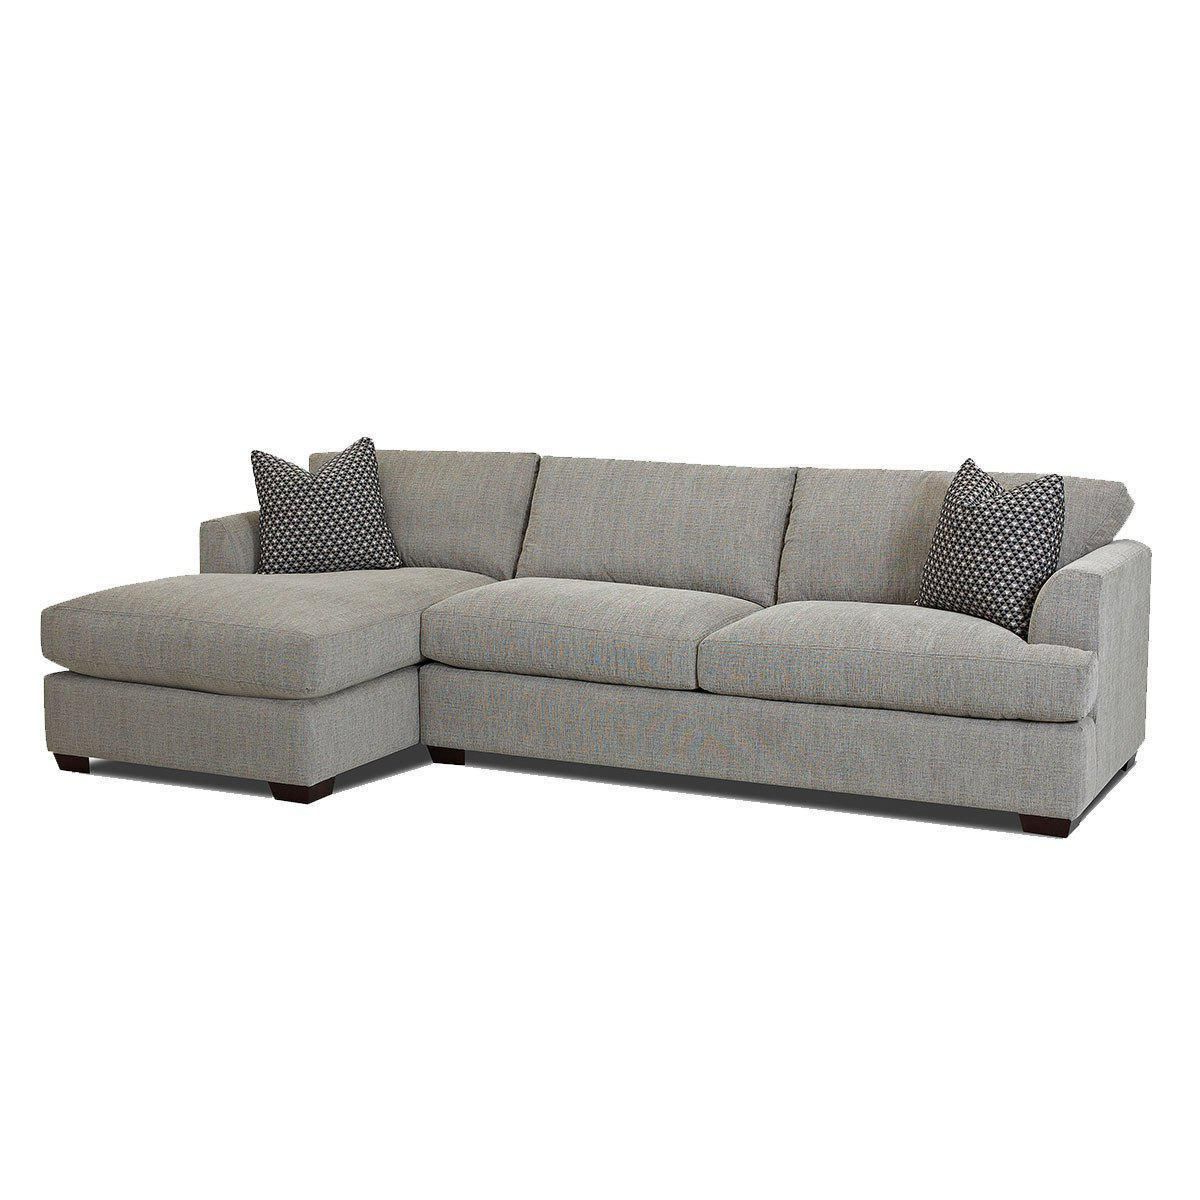 Jennifer Furniture's Bentley 2 Piece Sectional Comes In Intended For Widely Used 2pc Maddox Left Arm Facing Sectional Sofas With Chaise Brown (View 14 of 20)